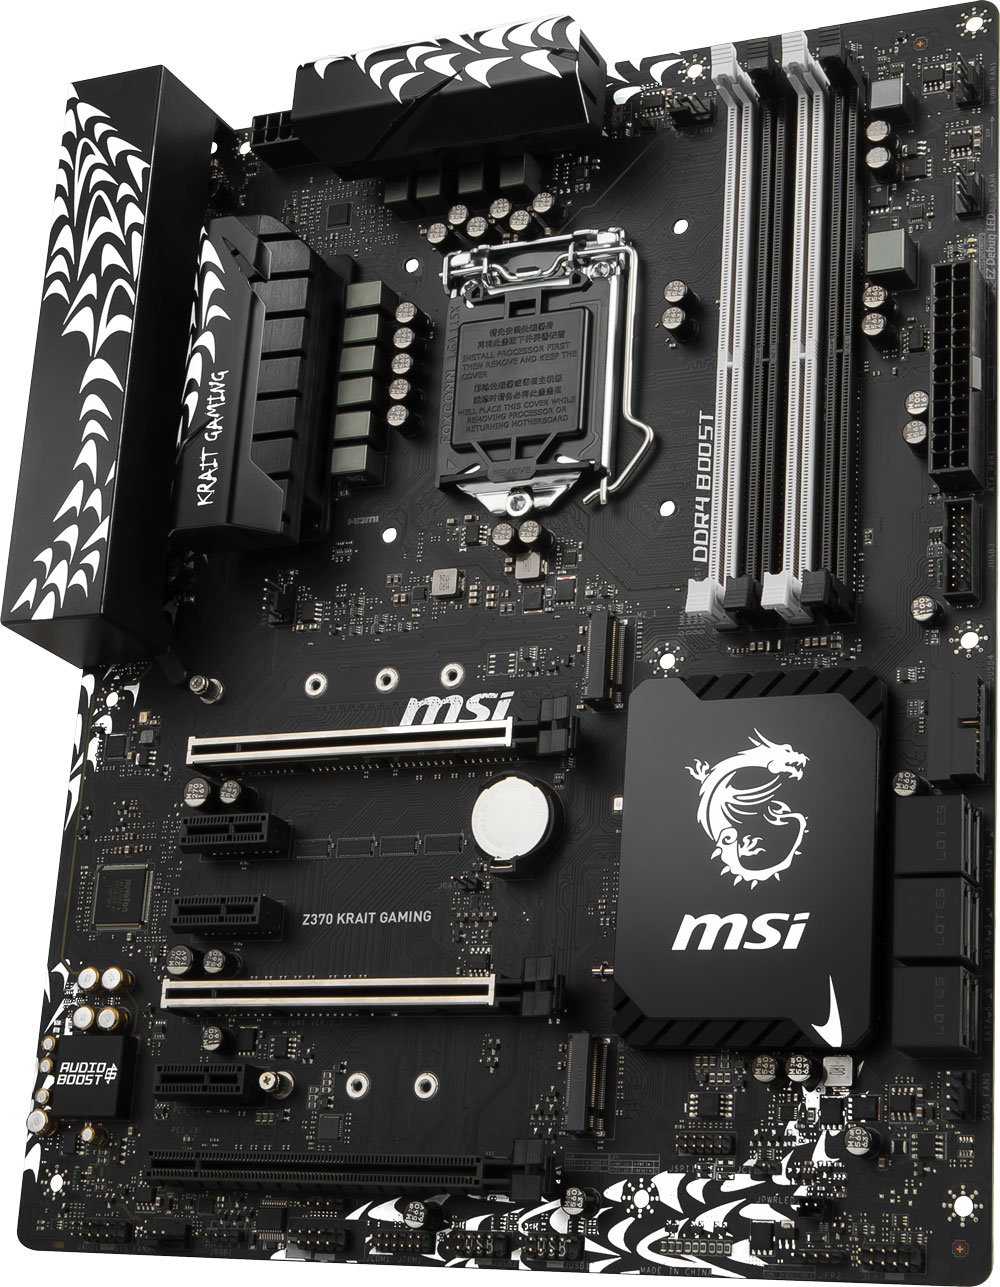 Core i5 8400 Gaming Pro Upgrade Kit - MSI Z370 KRAIT GAMING USB 3 1  Motherboard + Intel 8th Gen Core i5 8400 4 0GHz CPU + Crucial 8GB DDR4  2400MHz RAM